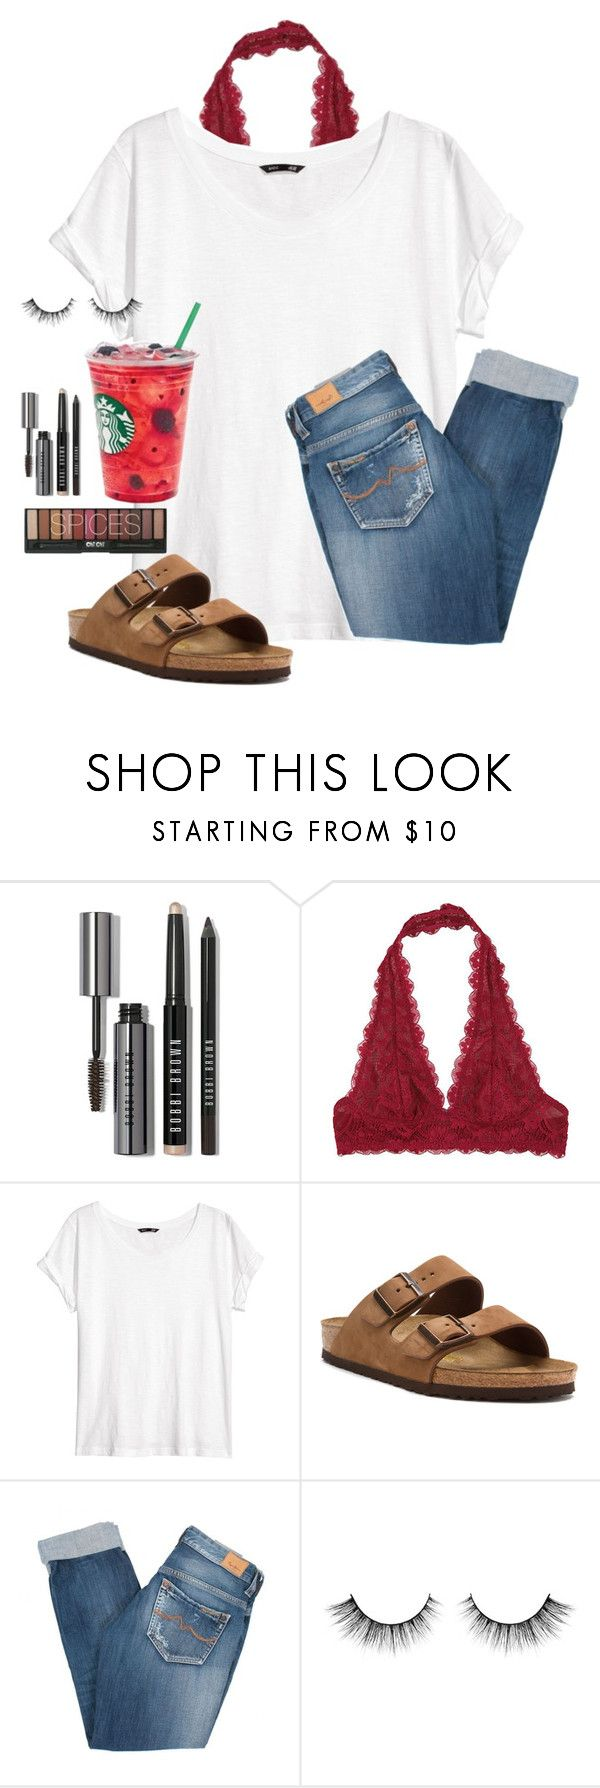 """""""Just got back from practice"""" by madison426 ❤ liked on Polyvore featuring Bobbi Brown Cosmetics, Free People, H&M, Birkenstock and Pepe Jeans London"""